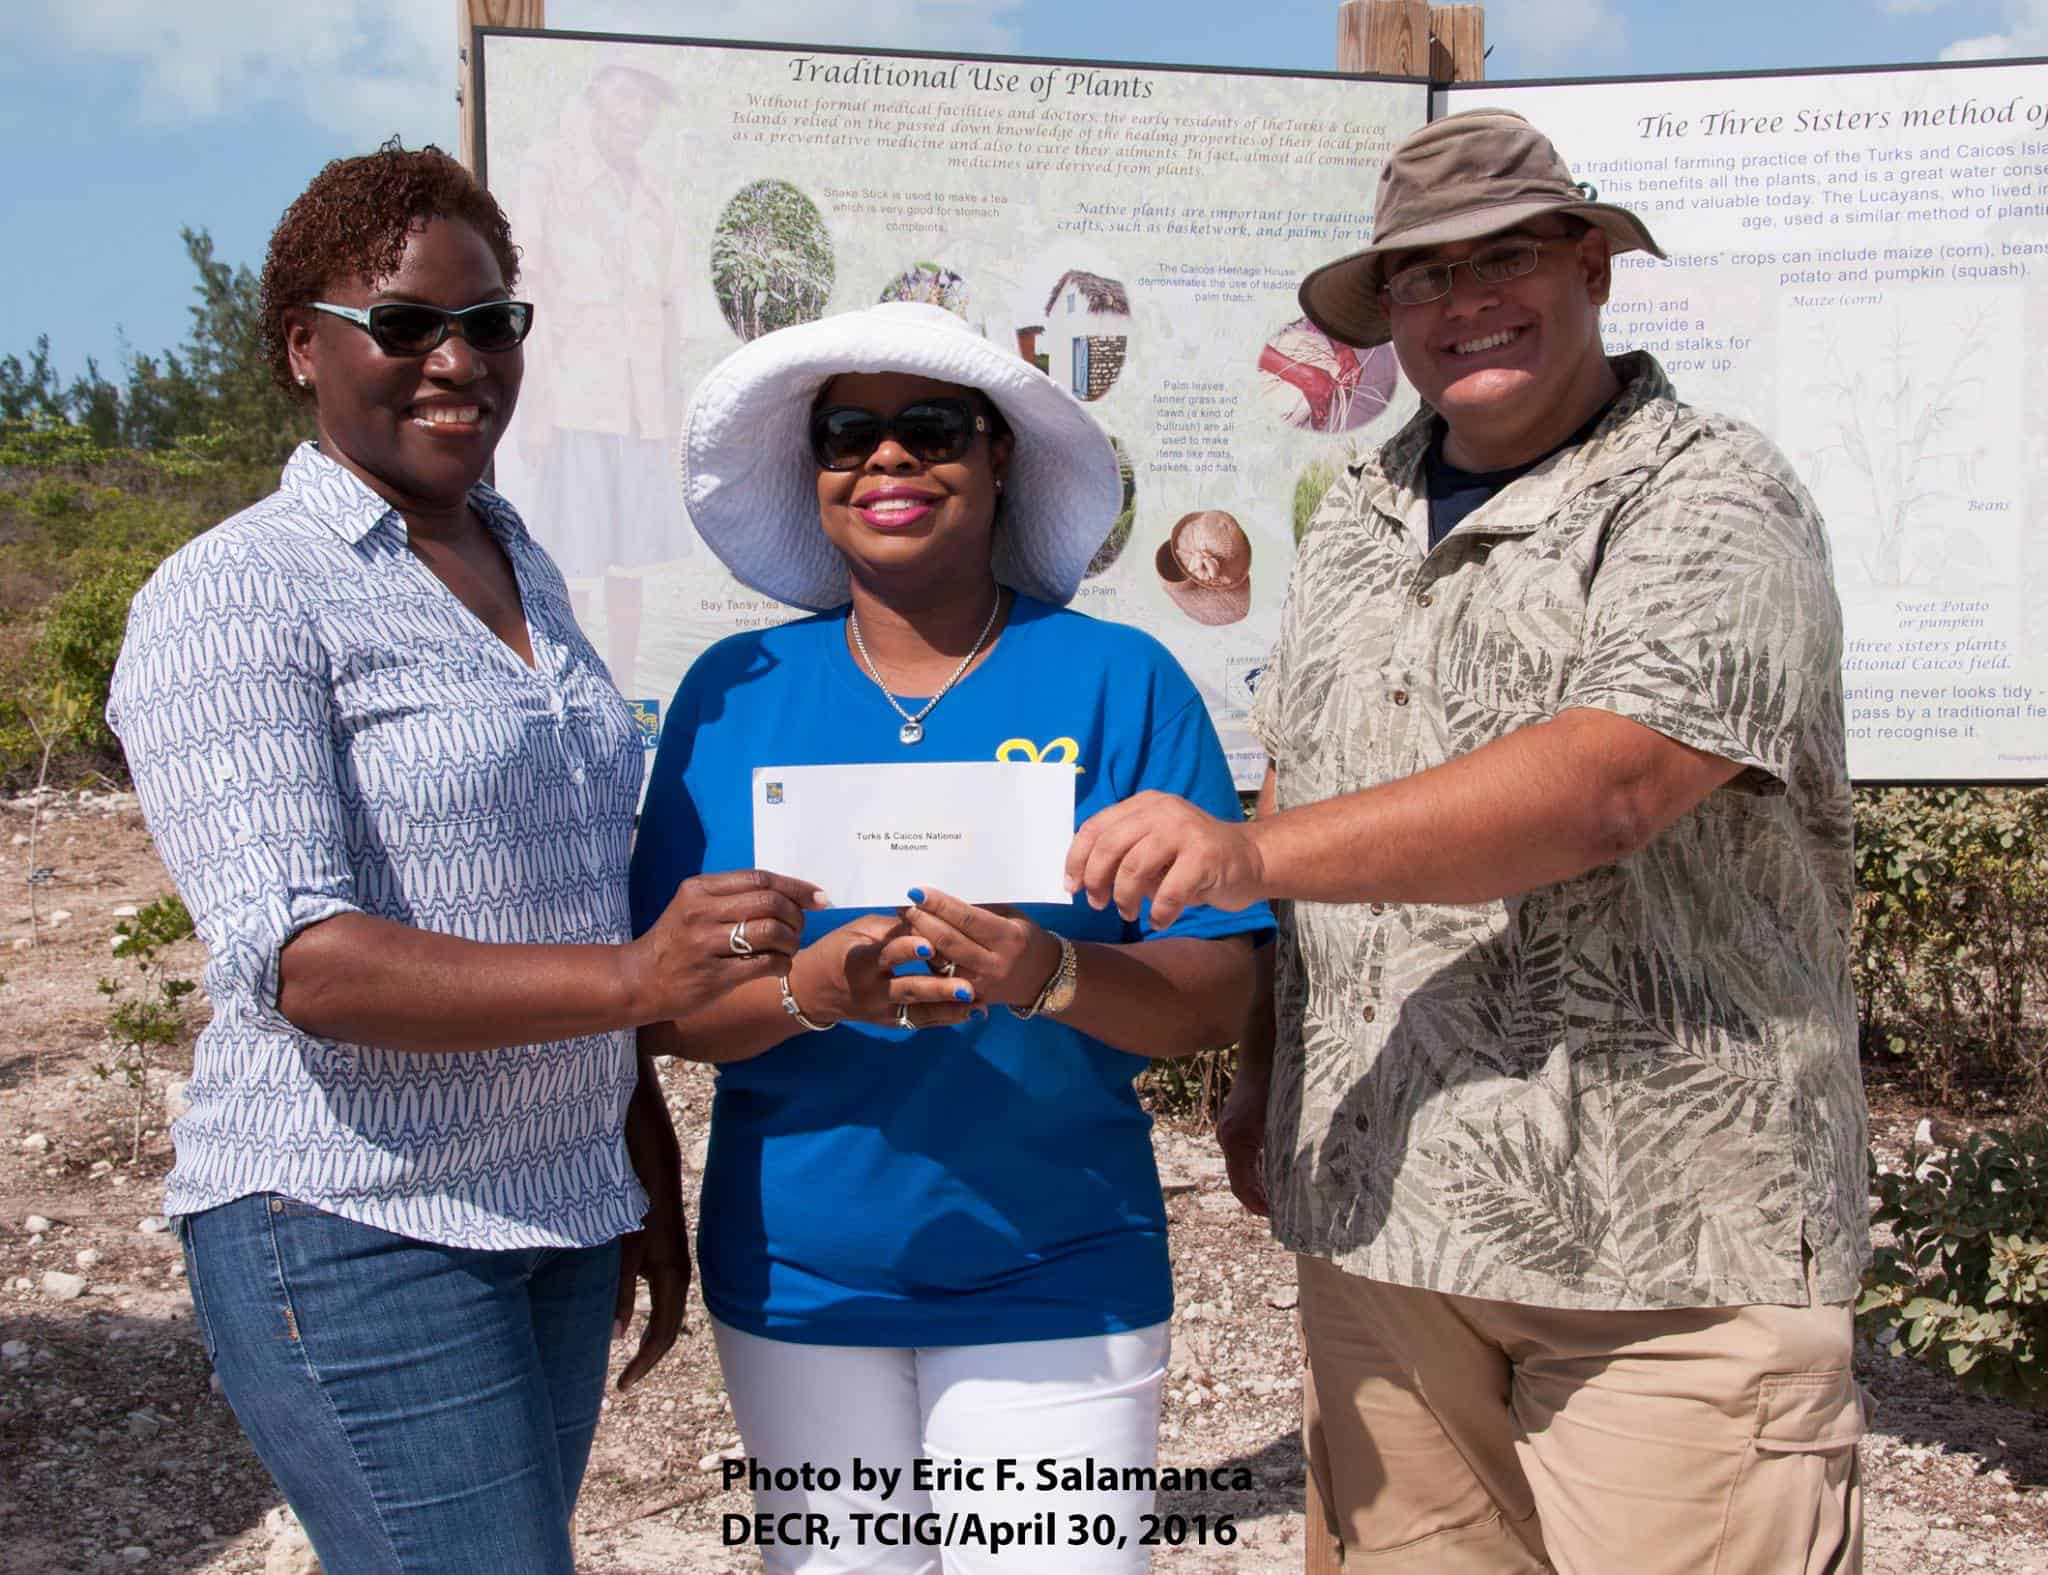 From left: Candianne Williams (Manager, Turks & Caicos National Museum, Providenciales), Sanfra Foster (Manager, Royal Bank of Canada, Providenciales) and Bryan Naqqi Manco (DECR and TCNM). Photo: Dr Eric Salamanca, DECR